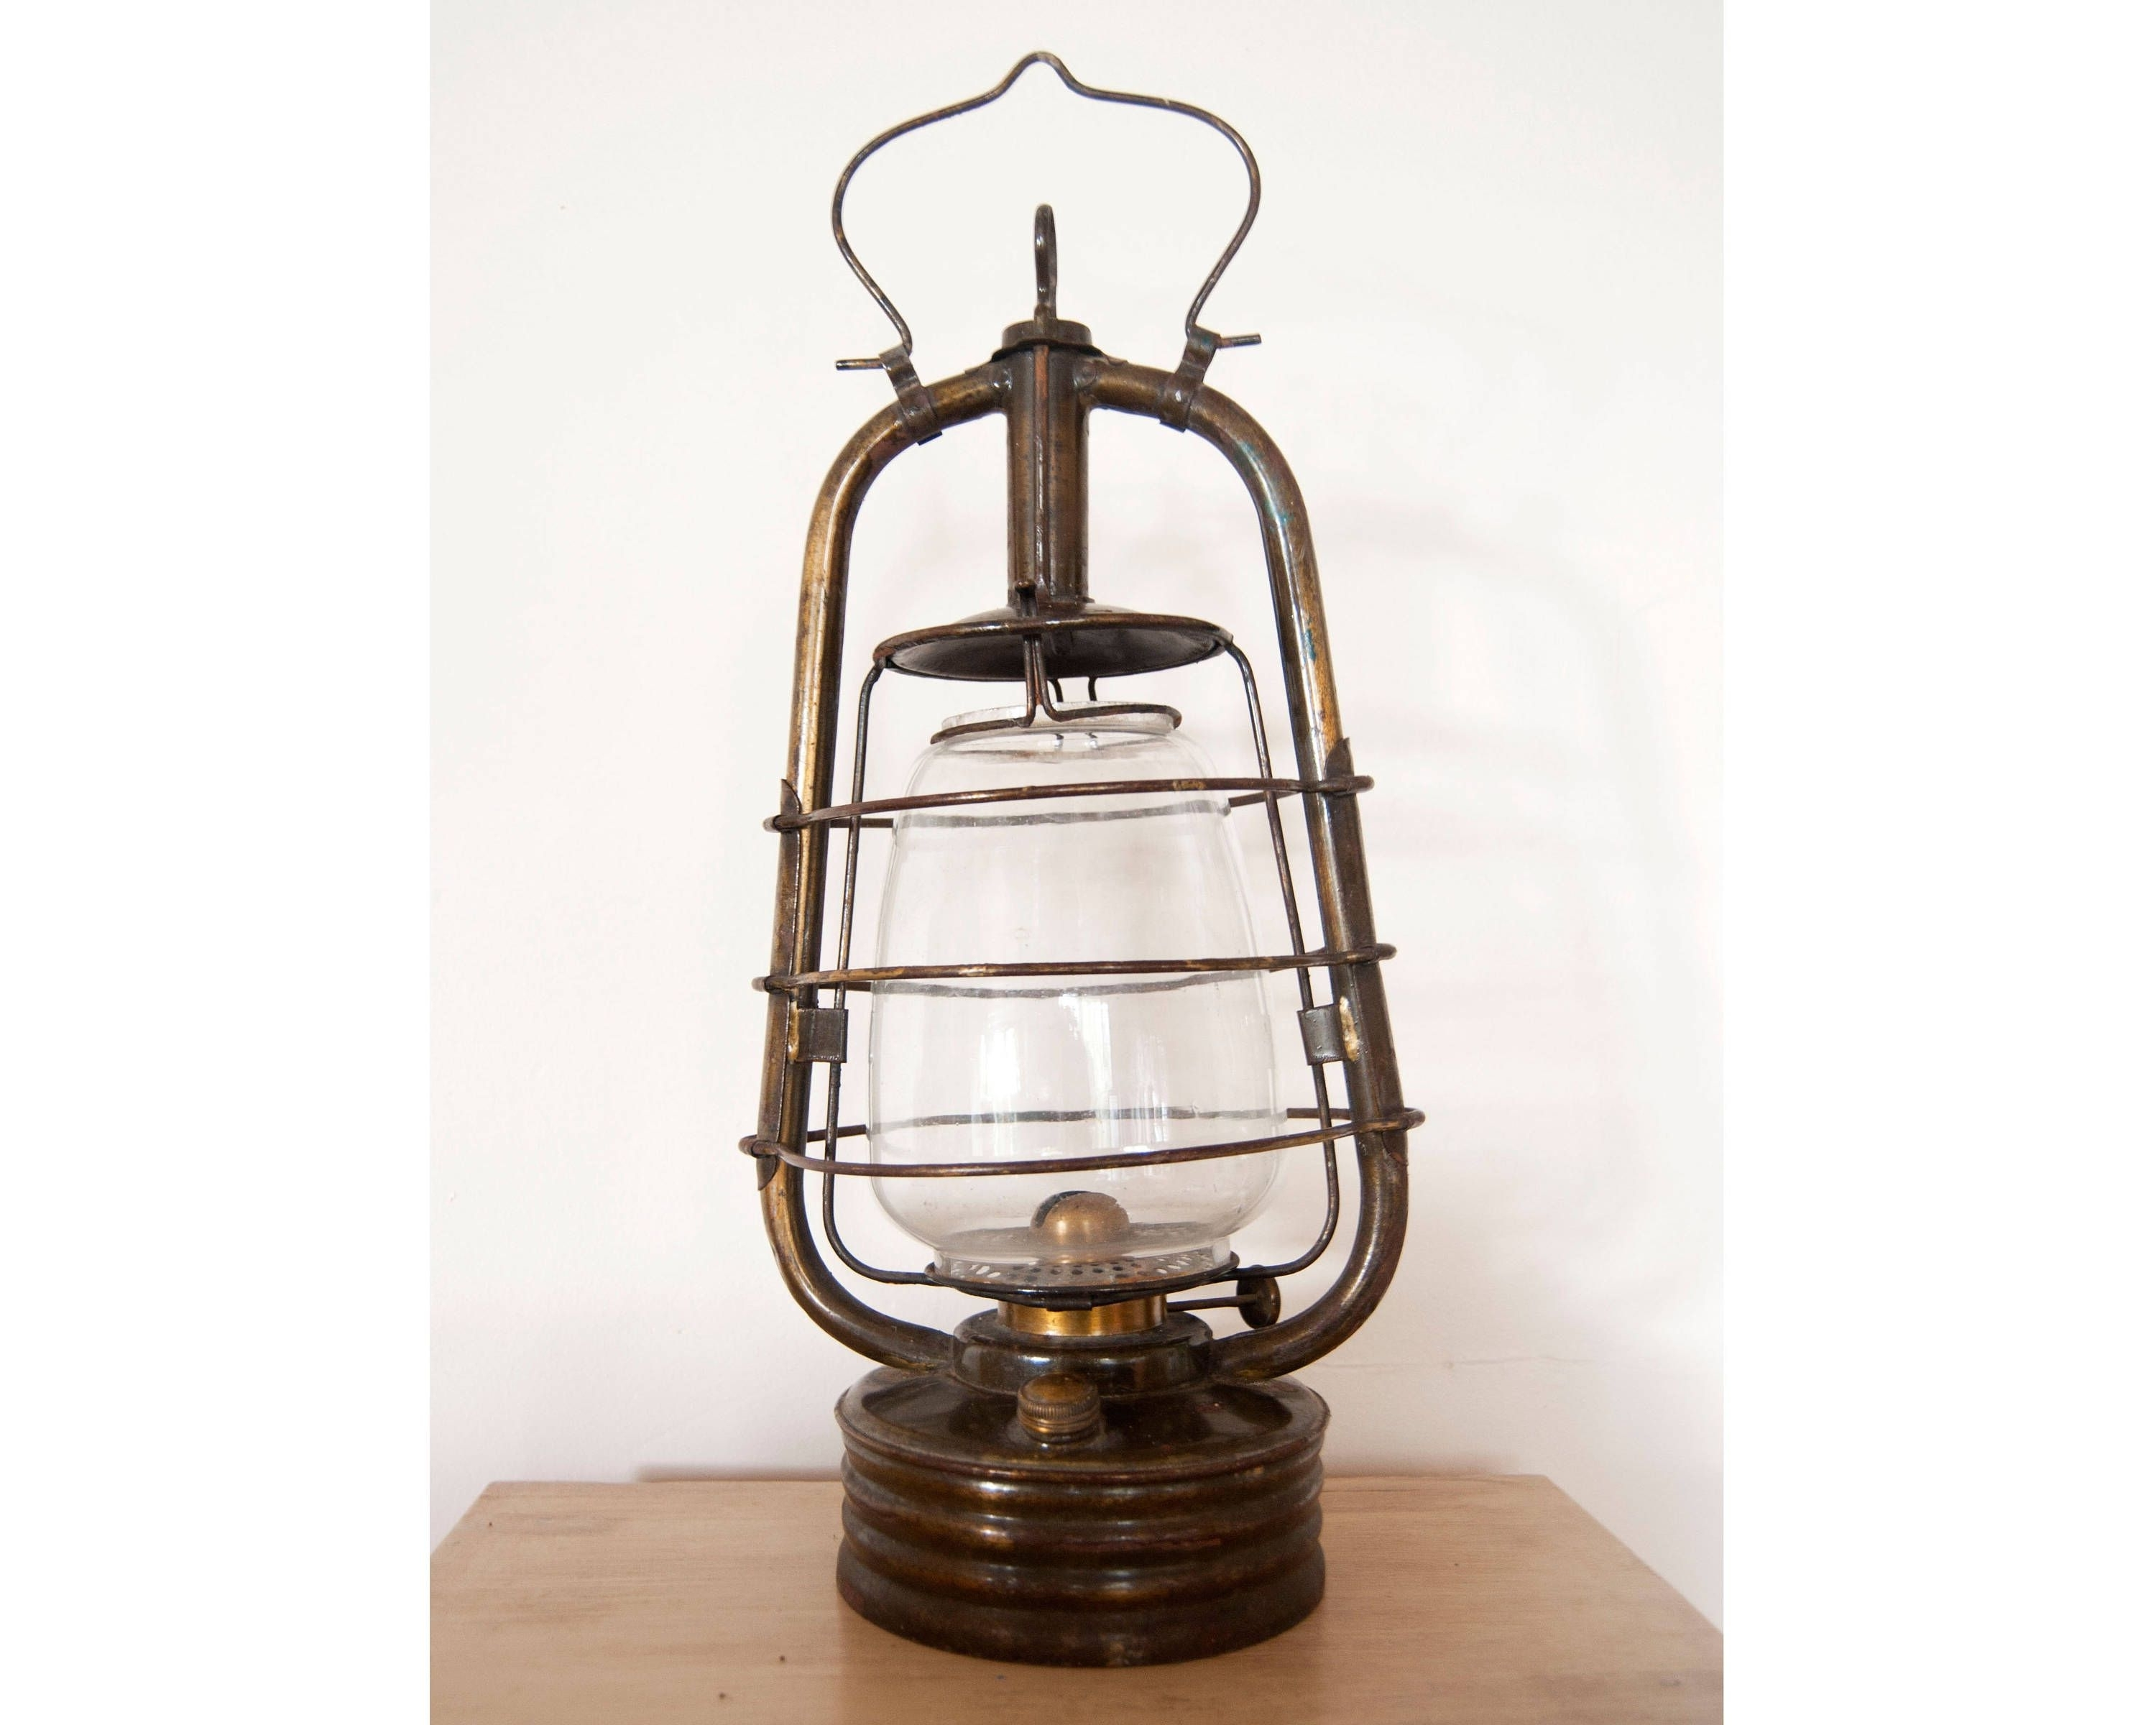 Latest Decorative Outdoor Kerosene Lanterns Intended For Vintage Lantern Oil Lamp – Antique French Hurricane Brass Lamp (View 12 of 20)